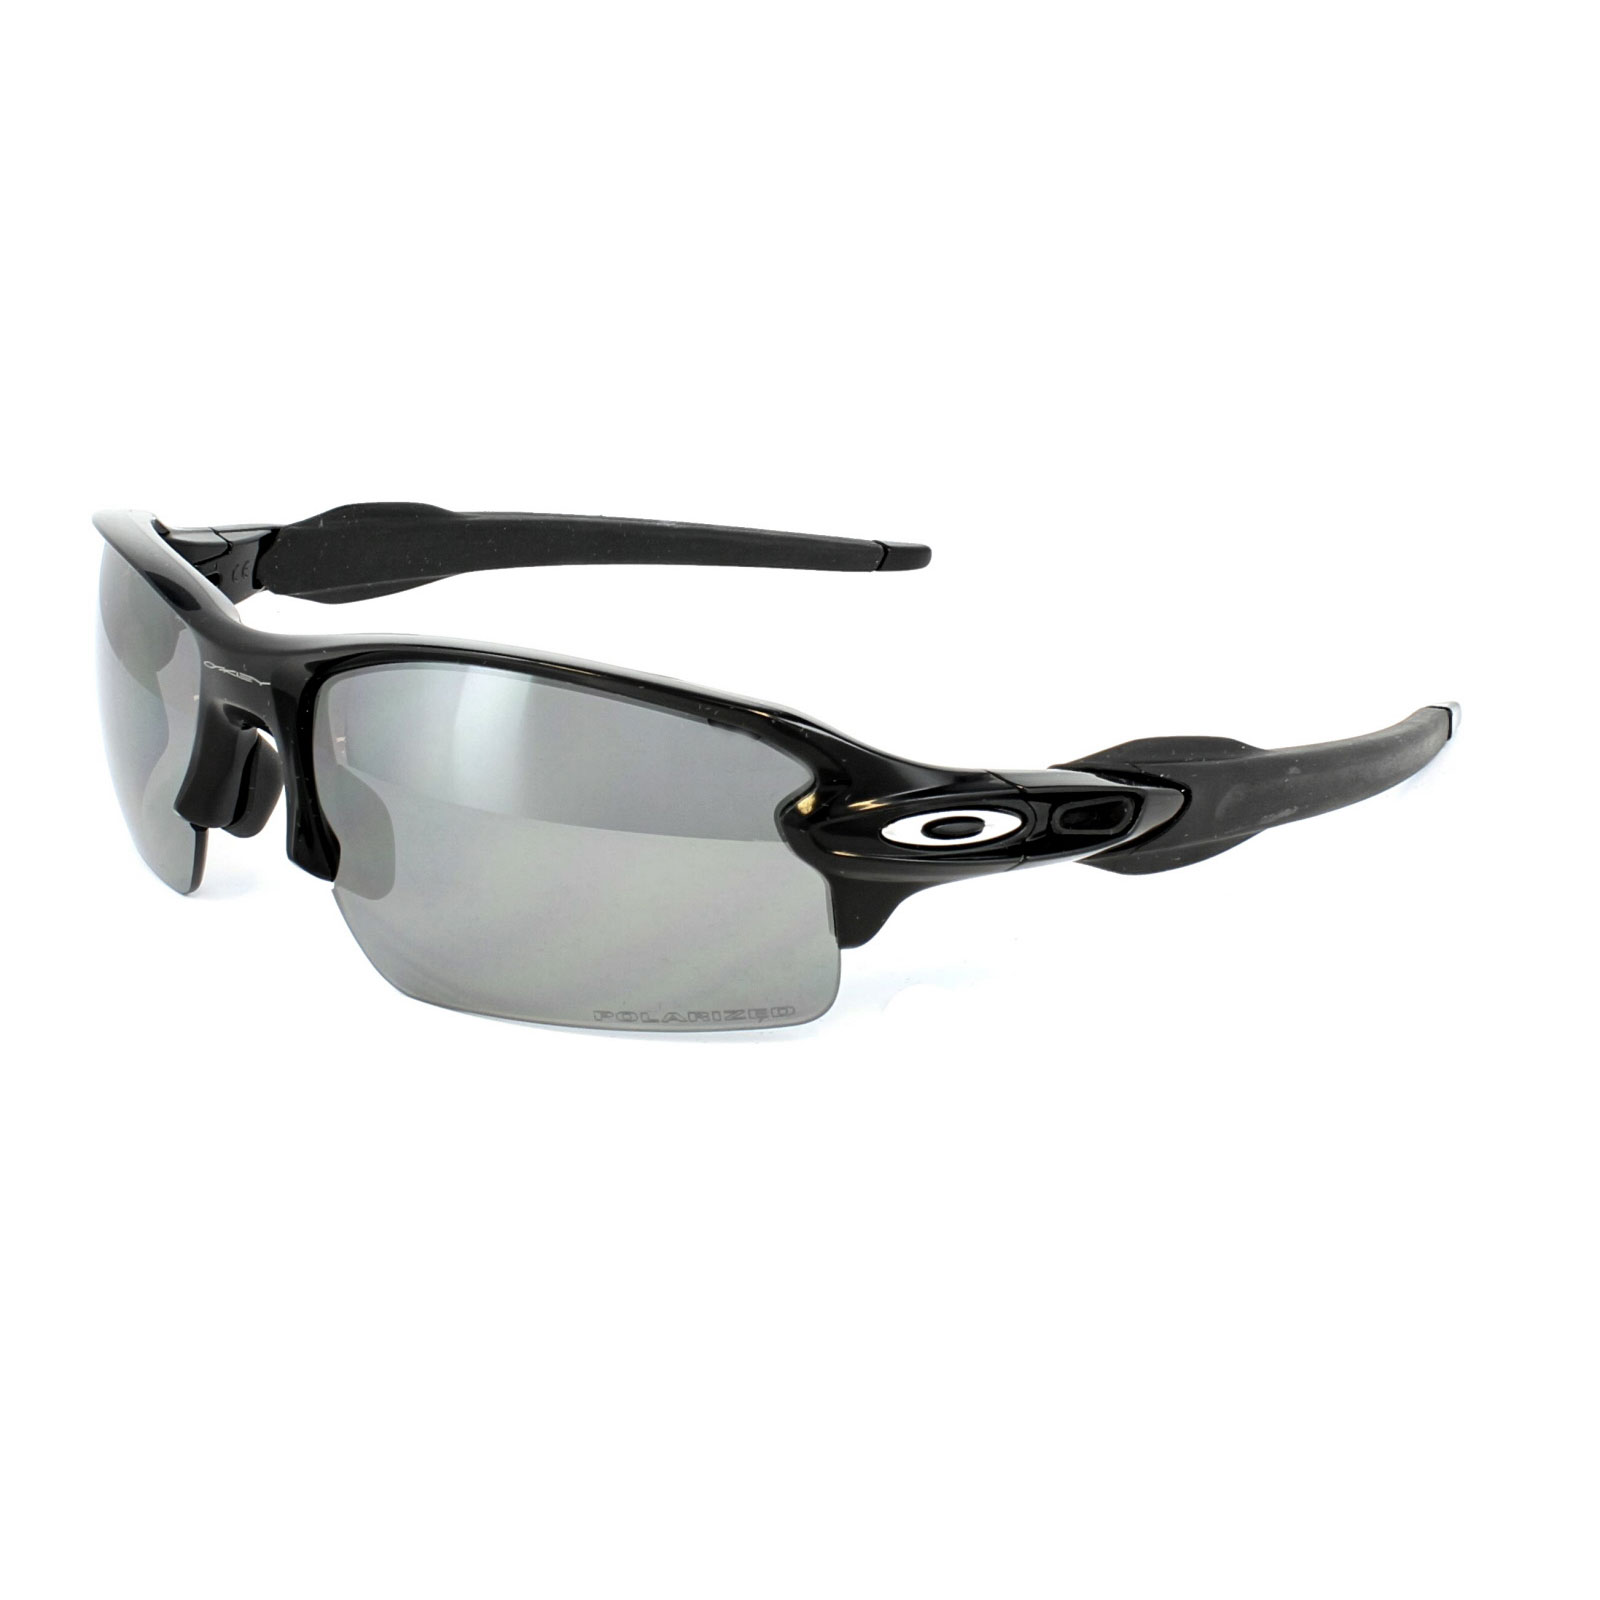 fabee7c32ef Sentinel Oakley Sunglasses Flak 2.0 OO9295-07 Polished Black Black Iridium  Polarized